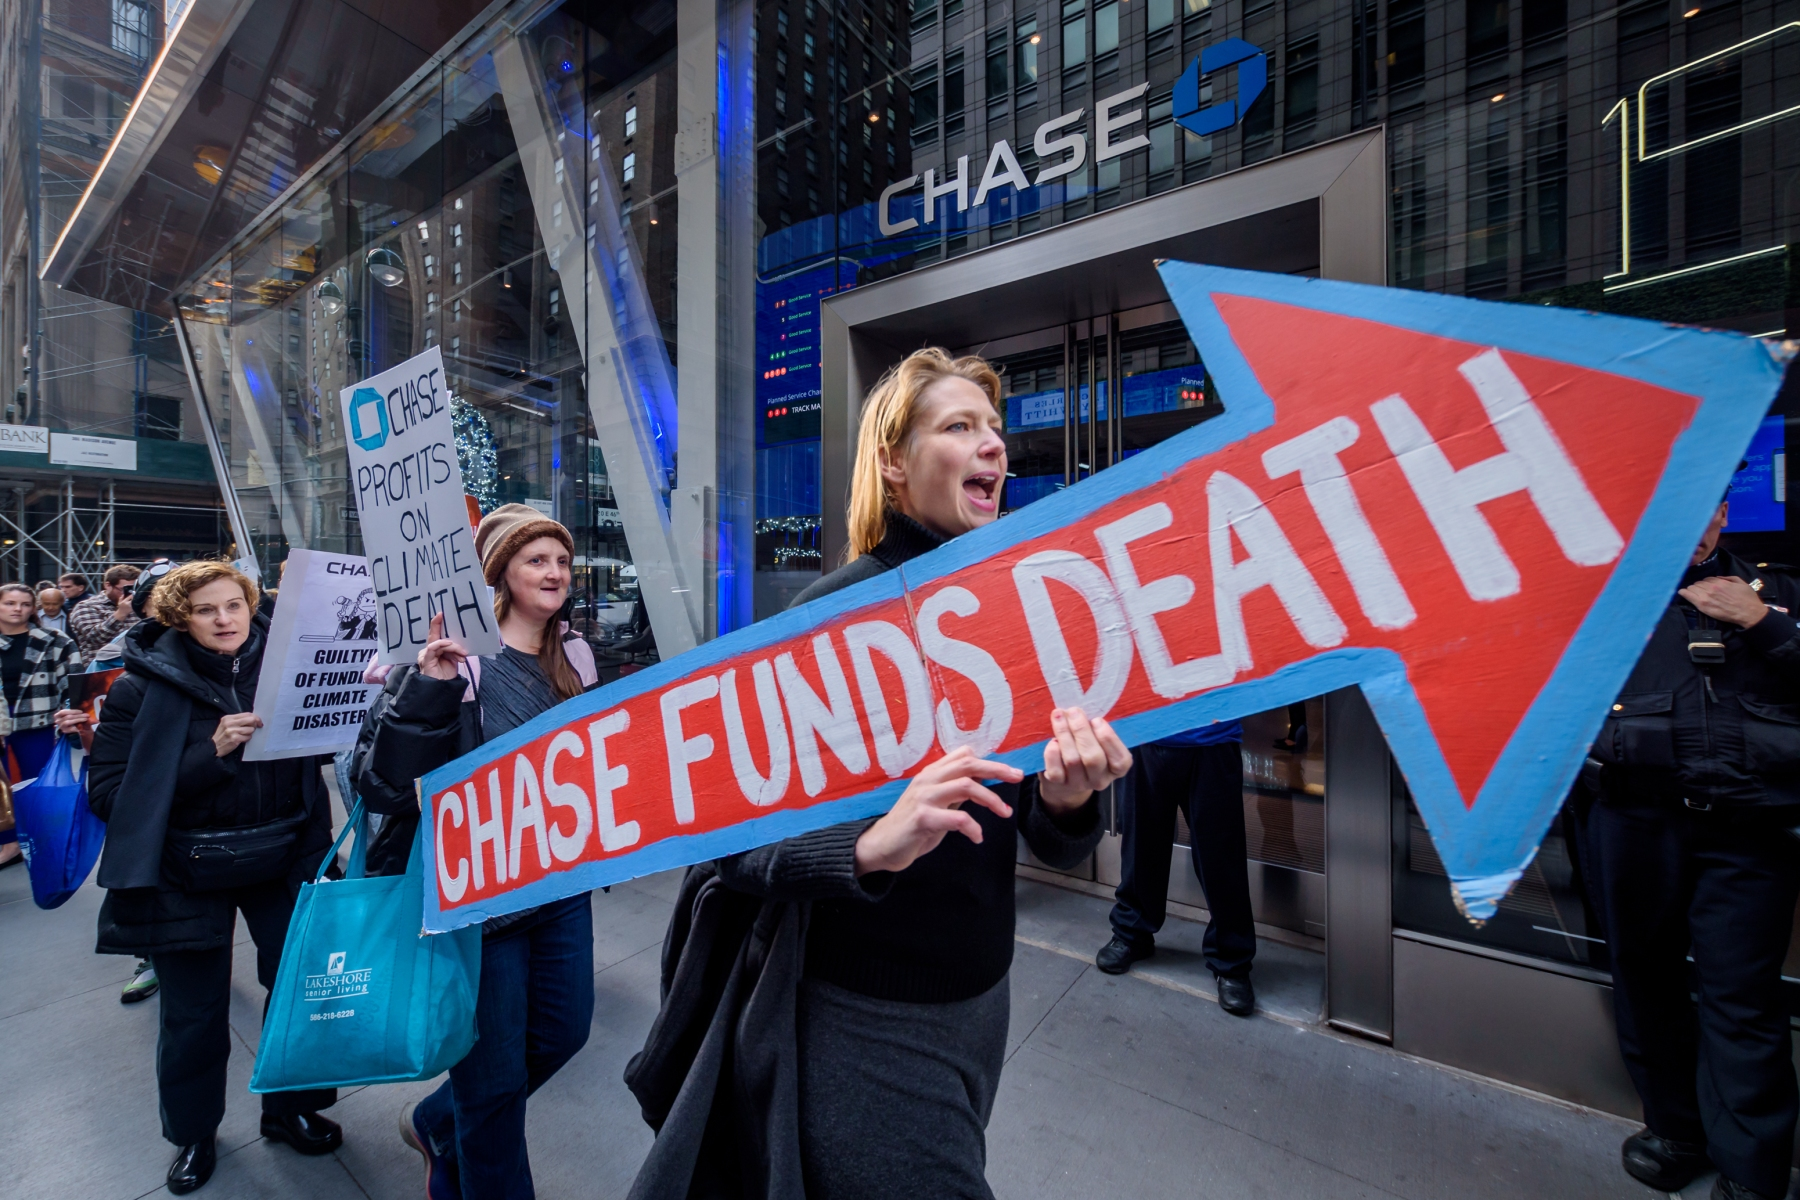 MANHATTAN, NEW YORK, UNITED STATES - 2019/11/20: Protesters picketing outside a Chase Bank branch. Expanding on the momentum of the quickly growing national movement to hold Chase Bank accountable for its central role in funding the global fossil fuel industry, dozens of New York residents with the organization Rise and Resist, with co-sponsor Rainforest Action Network stormed the new JPMorgan Chase headquarters in central Manhattan demanding the megabank end its massive financing of the climate crisis. (Photo by Erik McGregor/LightRocket via Getty Images)